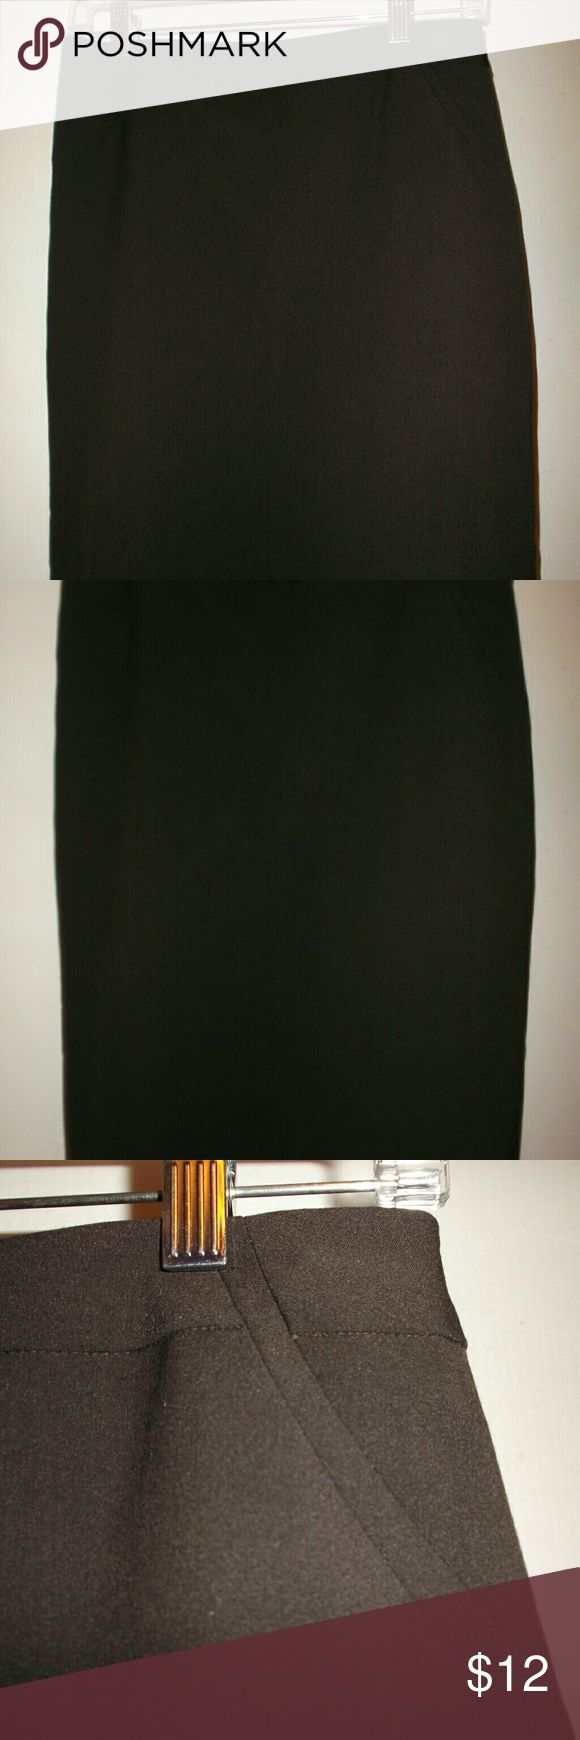 """Curvy Fit Chocolate Brown Pencil Skirt Womens 4 New with tags!   A classic style skirt by Worthington.   The color is called """"Deep Chocolate """" on the tag.  73 % polyester   23 % rayon,  4 % Spandex fabric.   Machine washable,   Left side zip.   The back is very cute with 2 rows of functional buttons near the bottom hem.   No functional pockets,  fully lined.   Measures 14 3/4 inches across the waist in front,   22.5 inches waist to bottom hem Worthington Skirts Pencil"""